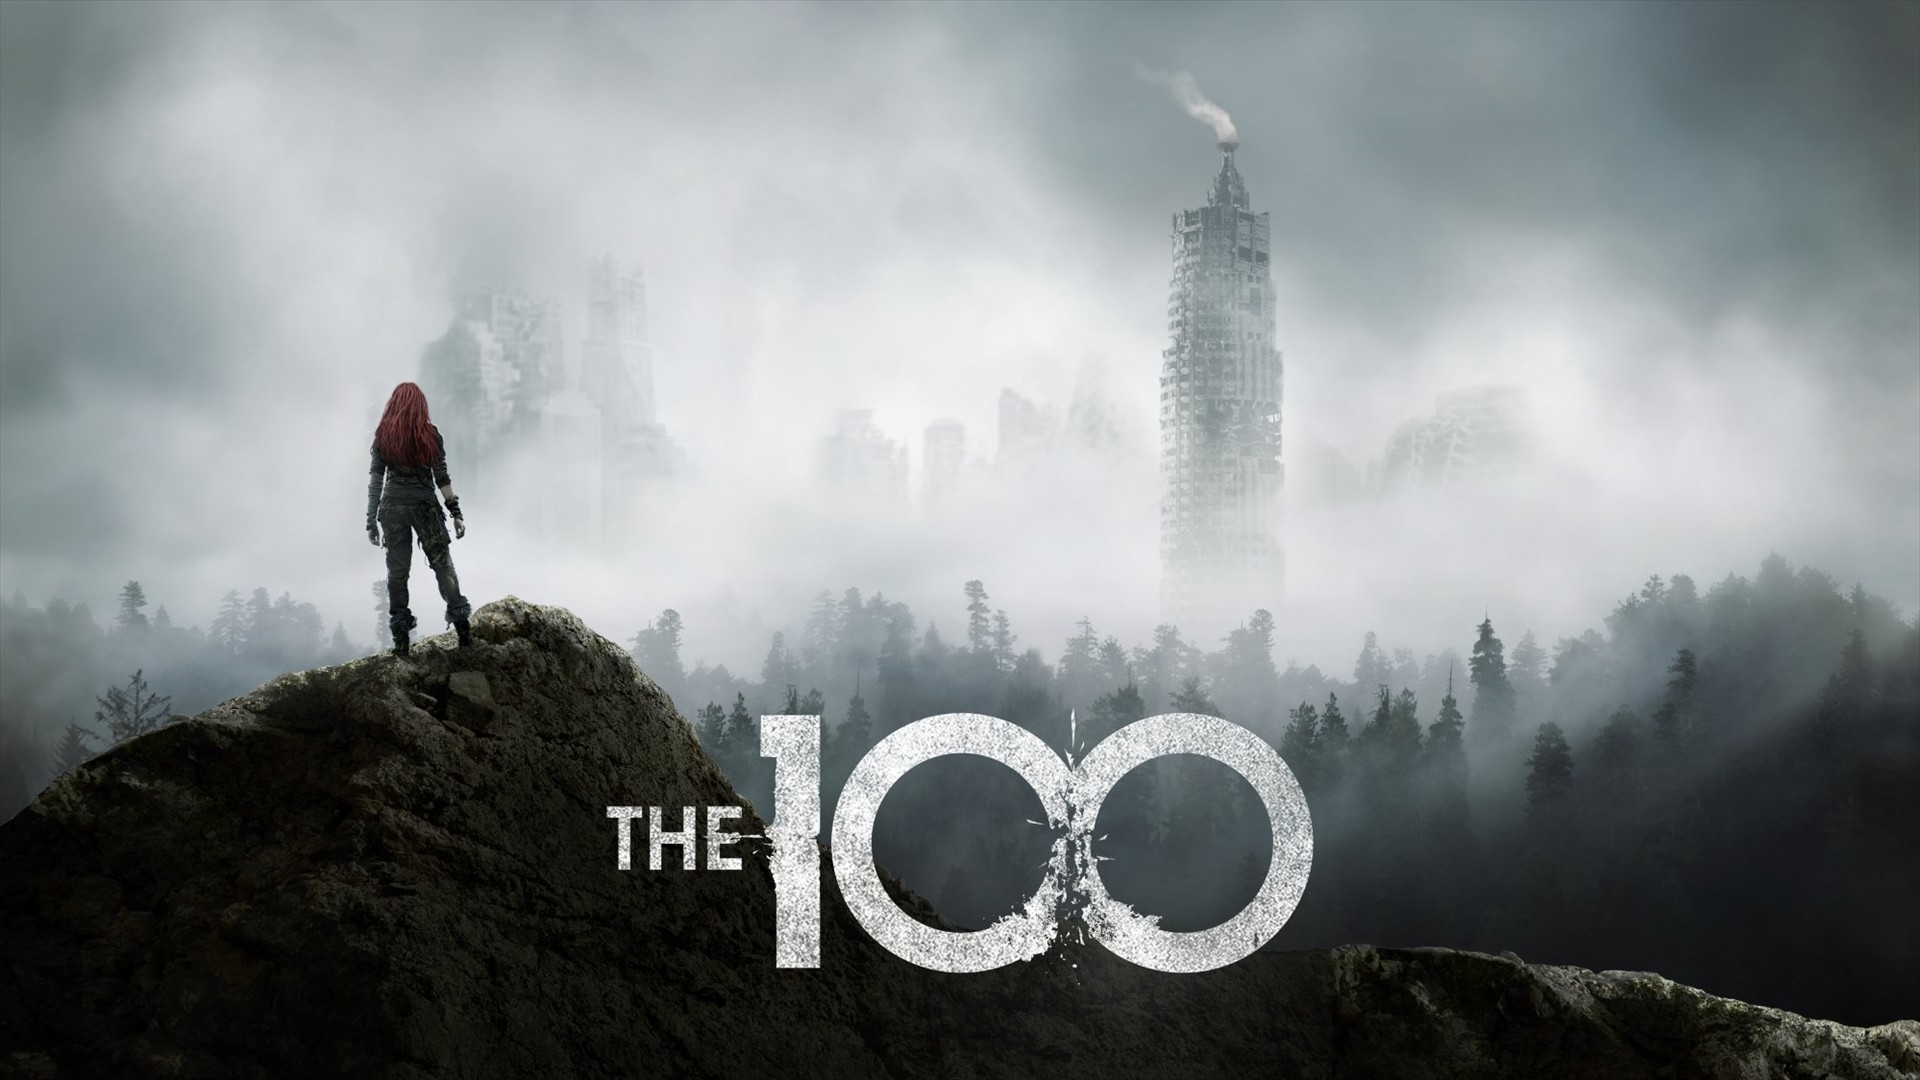 The highs and lows of The 100 season three